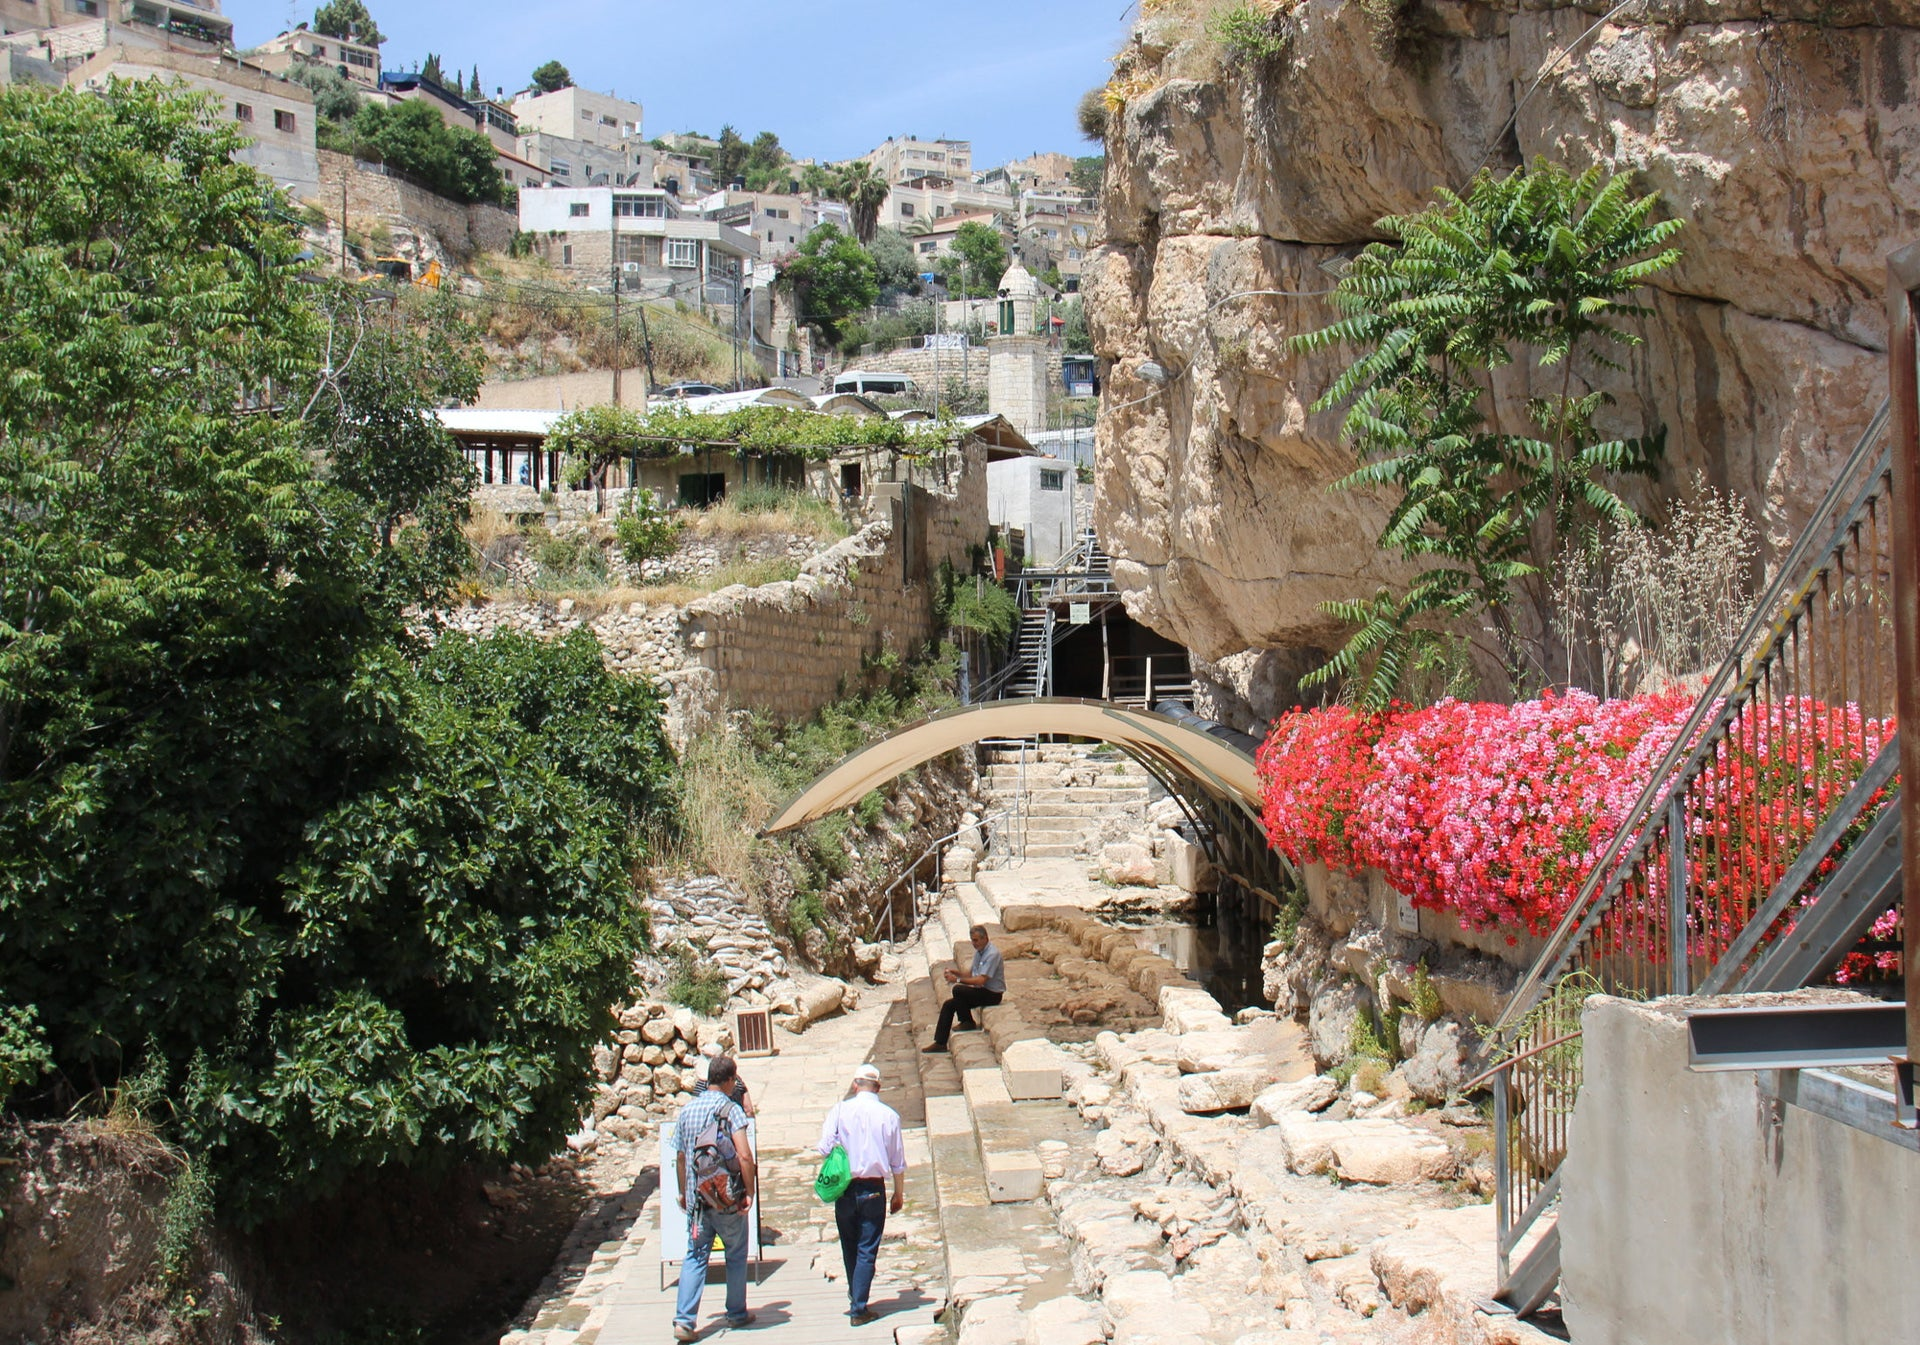 The Siloam pool, where the stepped-stone street begins its climb toward the Temple Mount